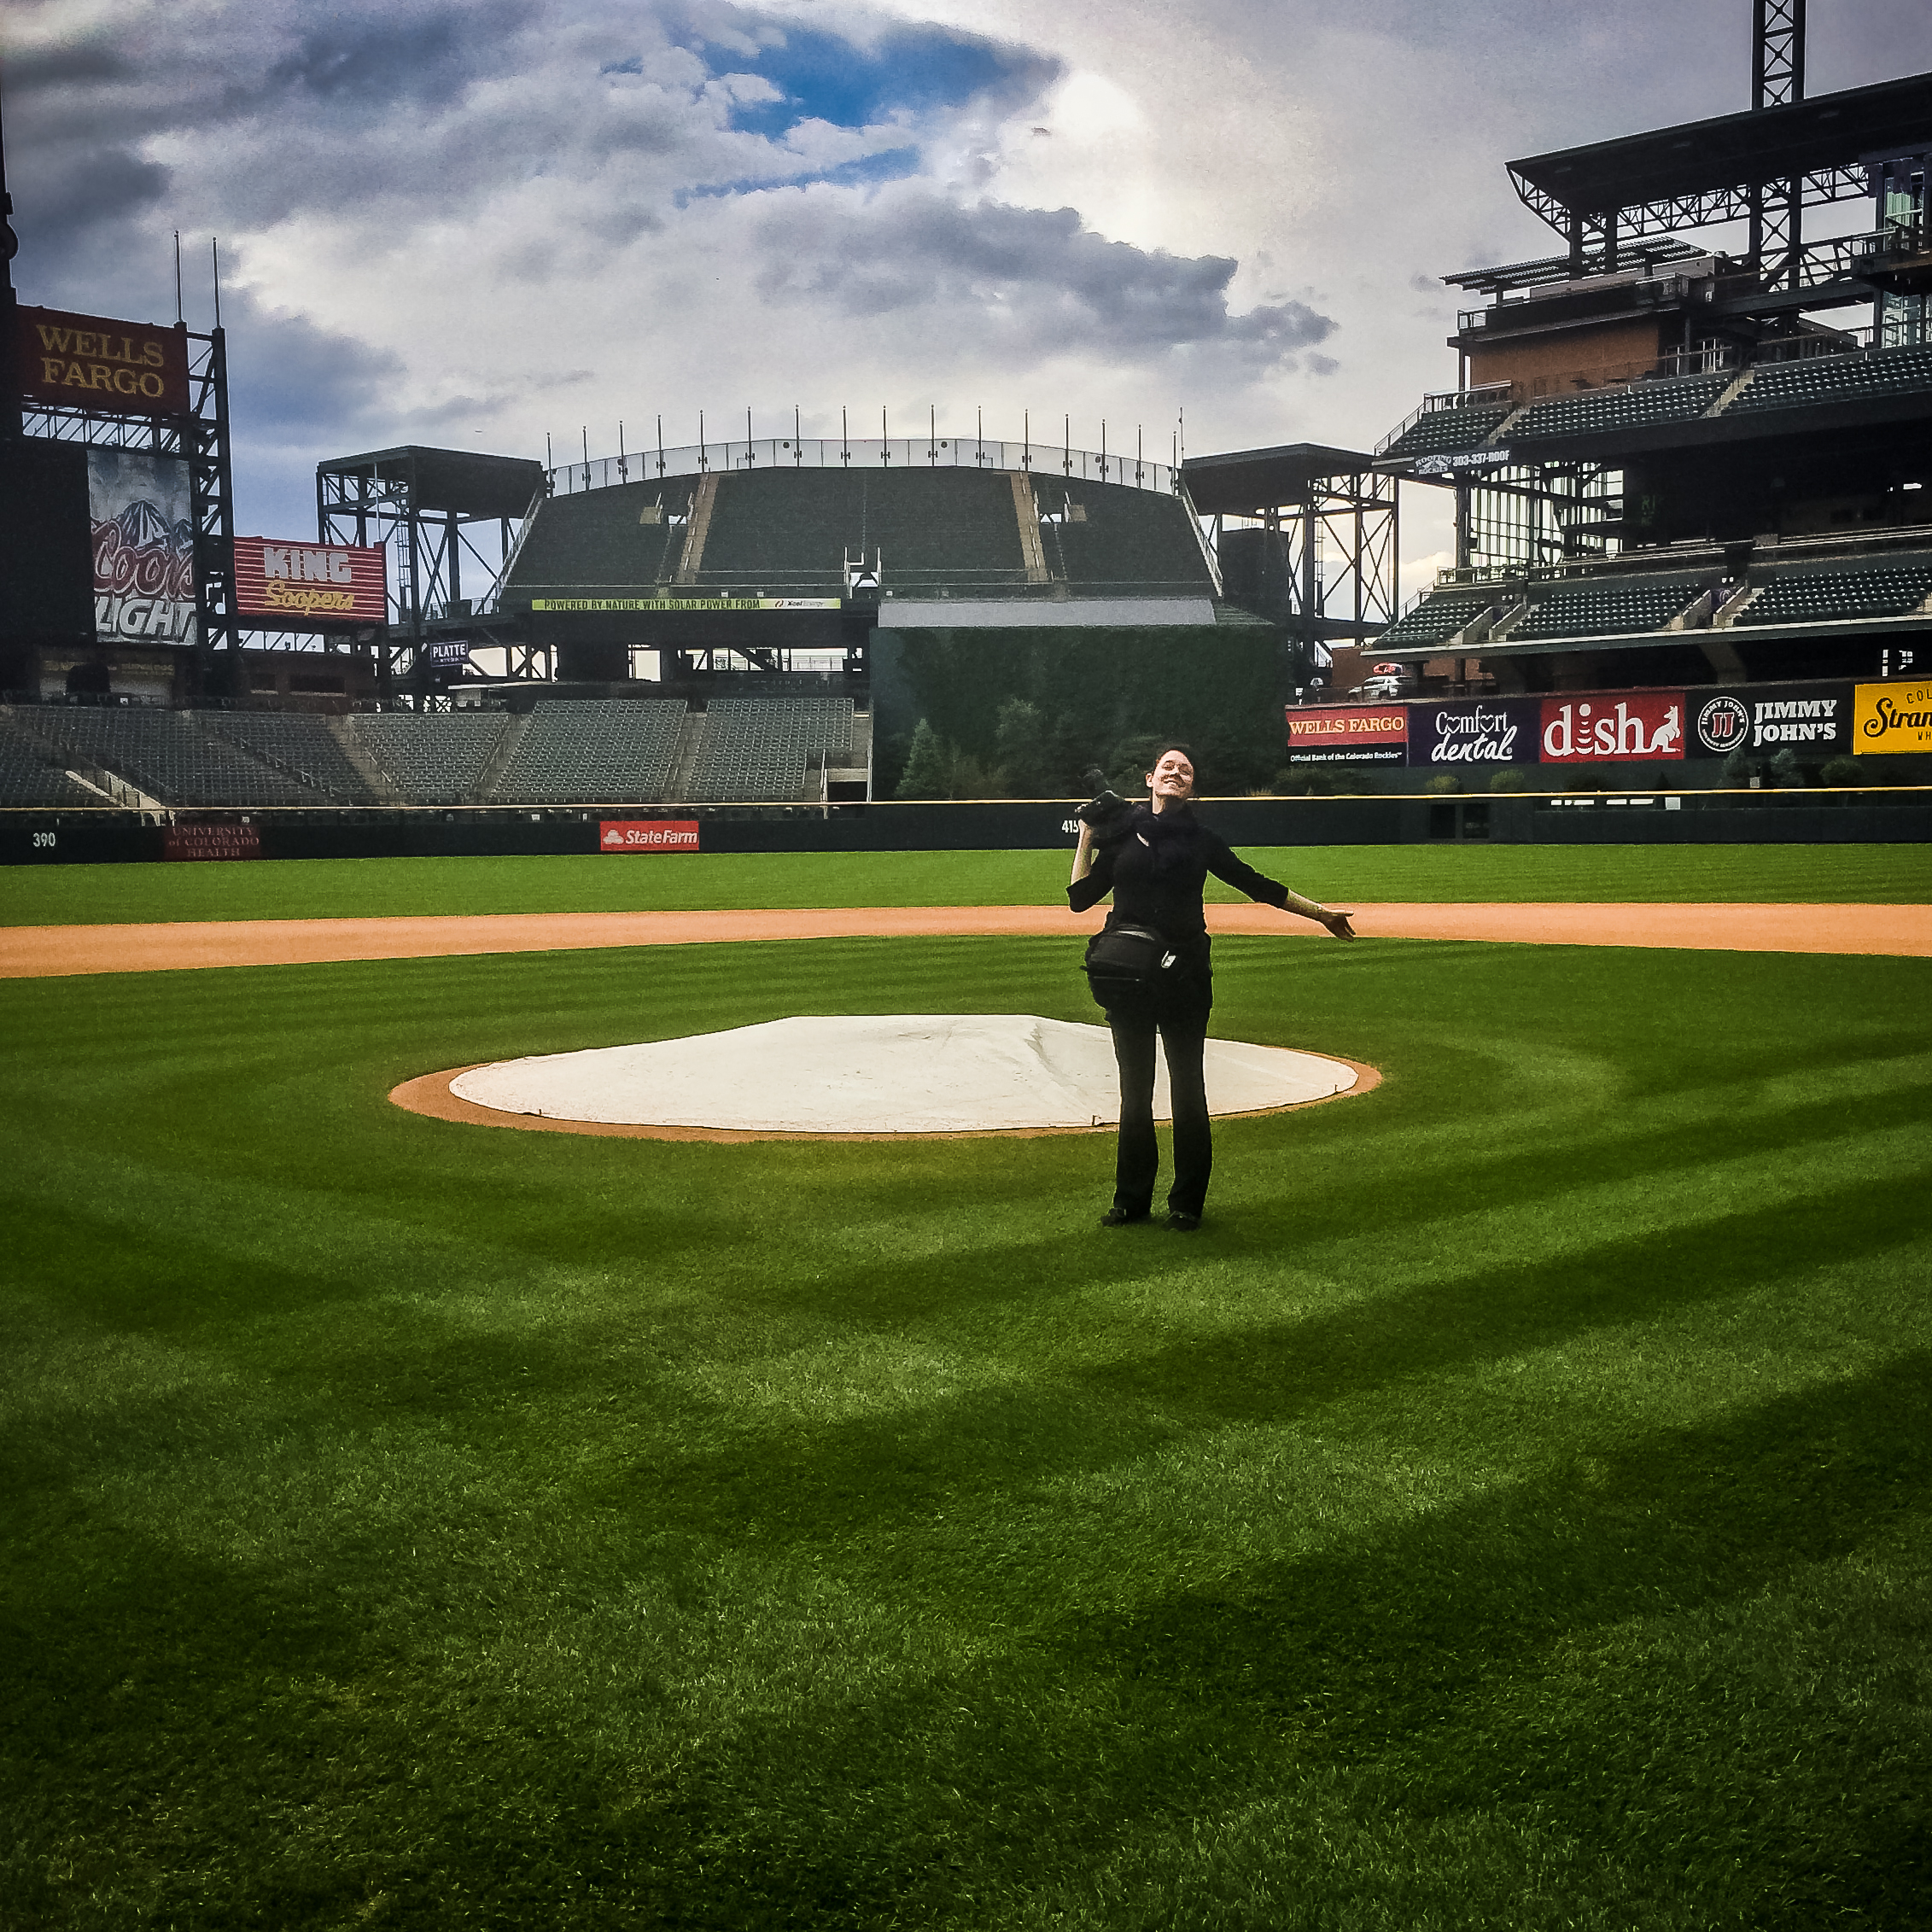 Me, while shooting a wedding at Coors Field in downtown Denver.